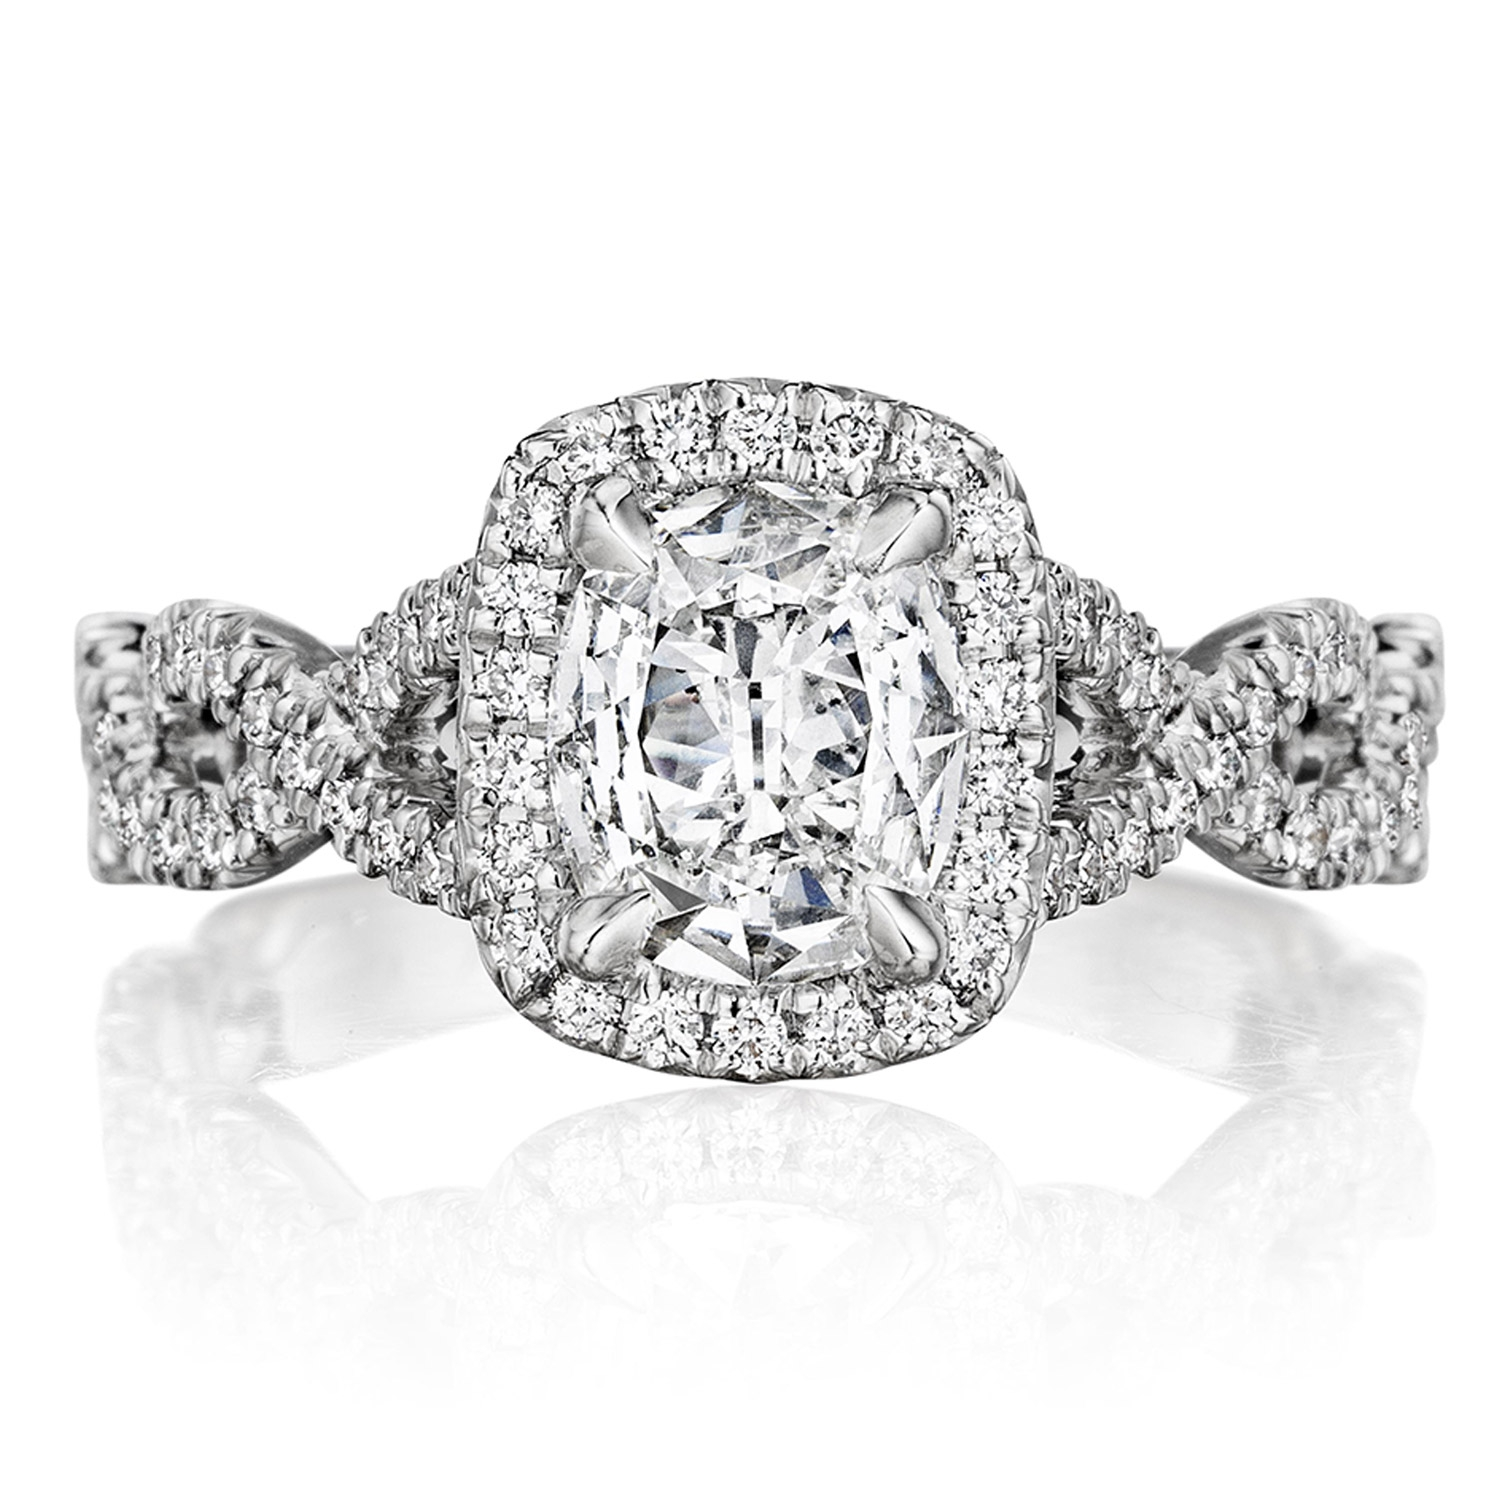 Henri Daussi ATWS Cushion Halo Interlaced Shank Diamond Engagement Ring